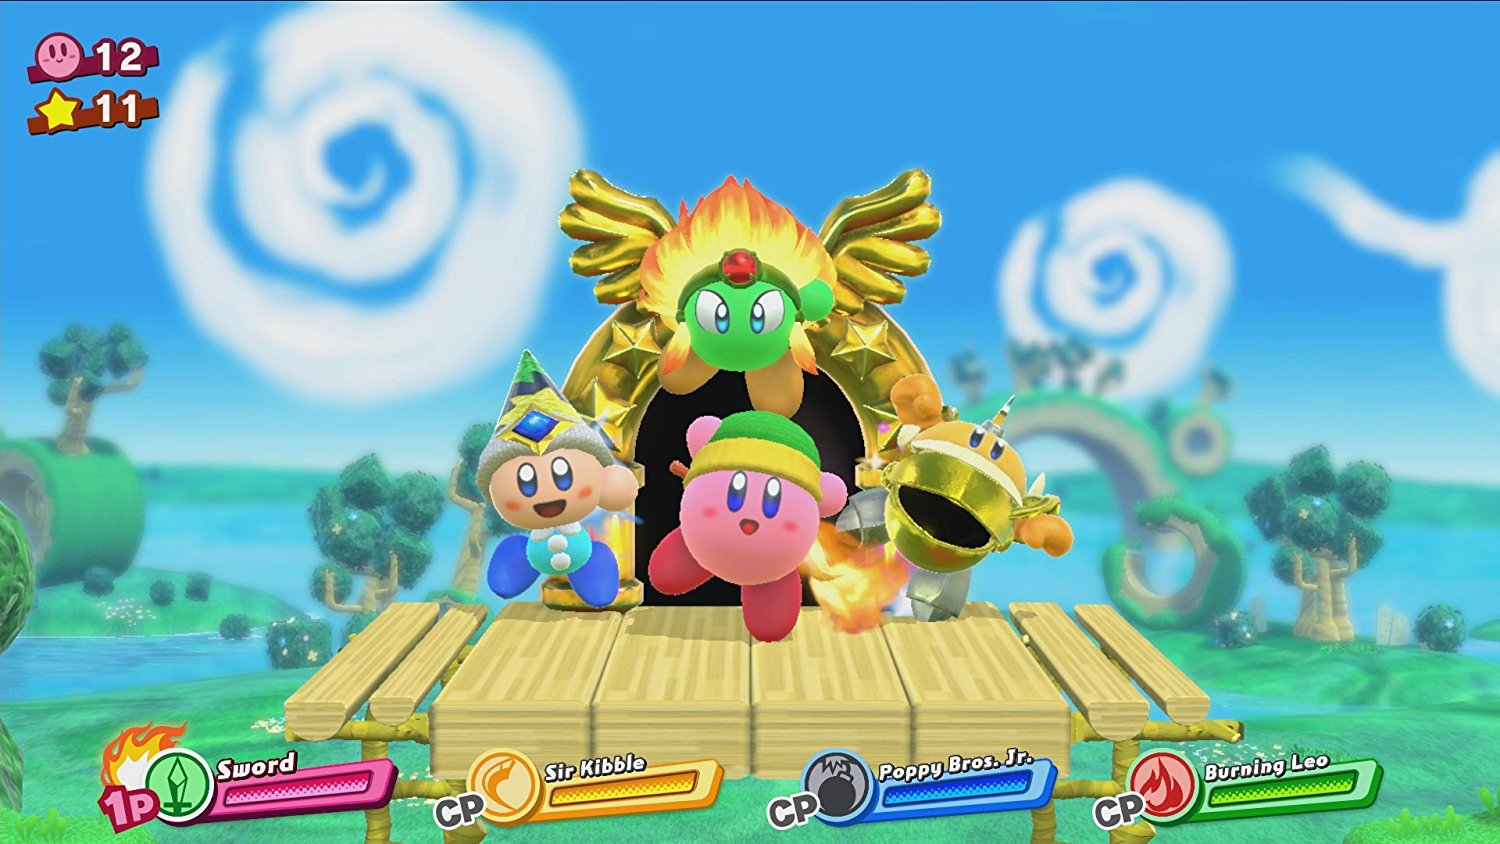 Nintendo Switch - Kirby Star Allies